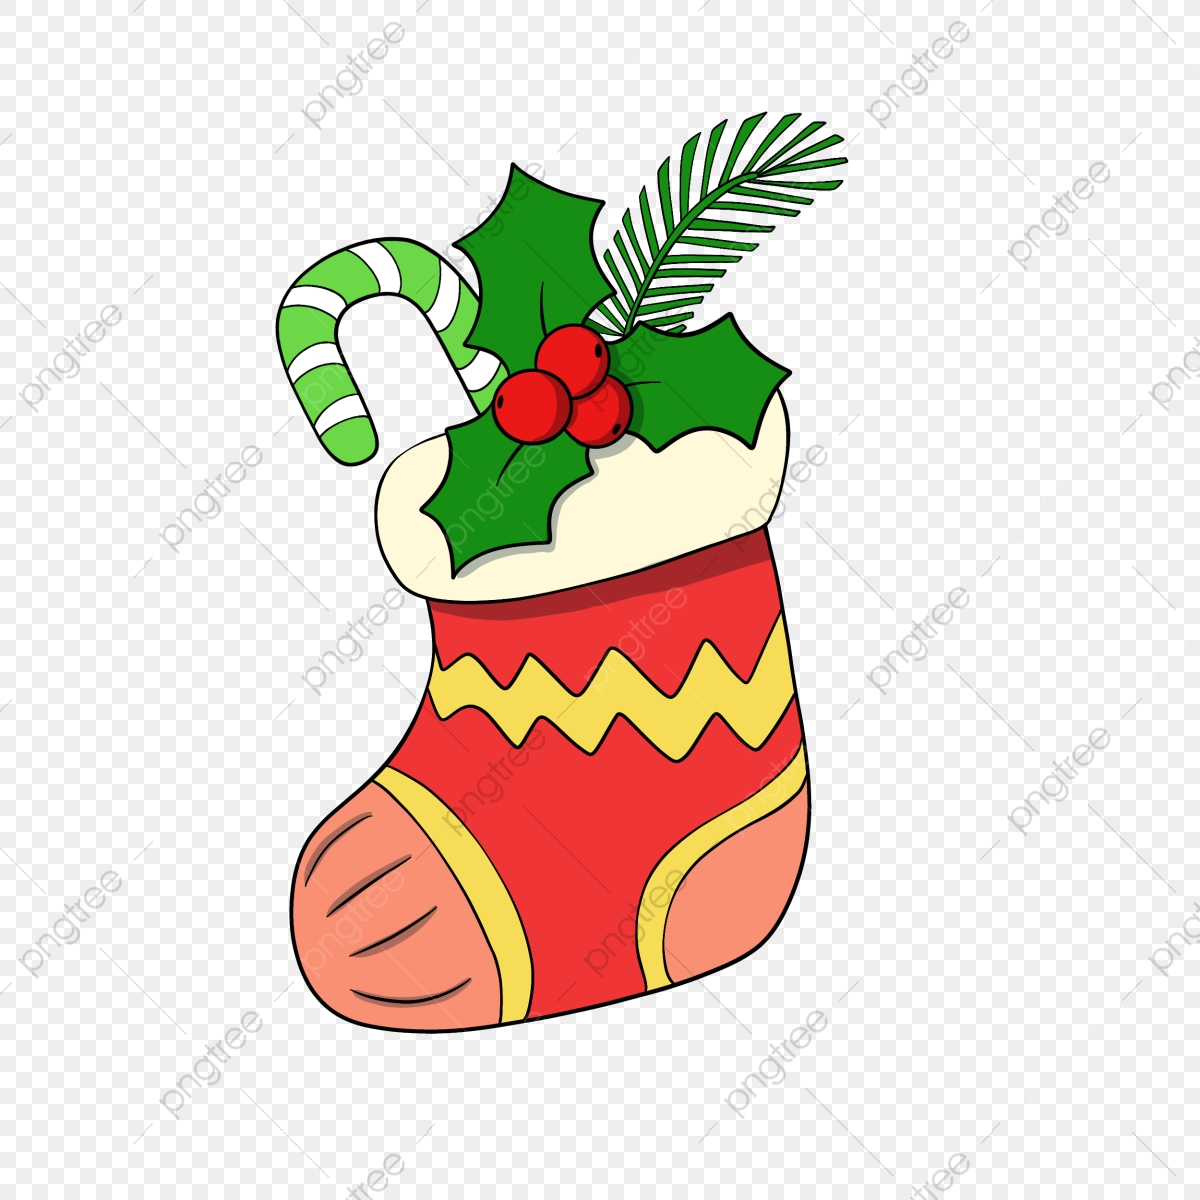 Christmas Clipart Download Free Transparent Png Format Clipart Images On Pngtree